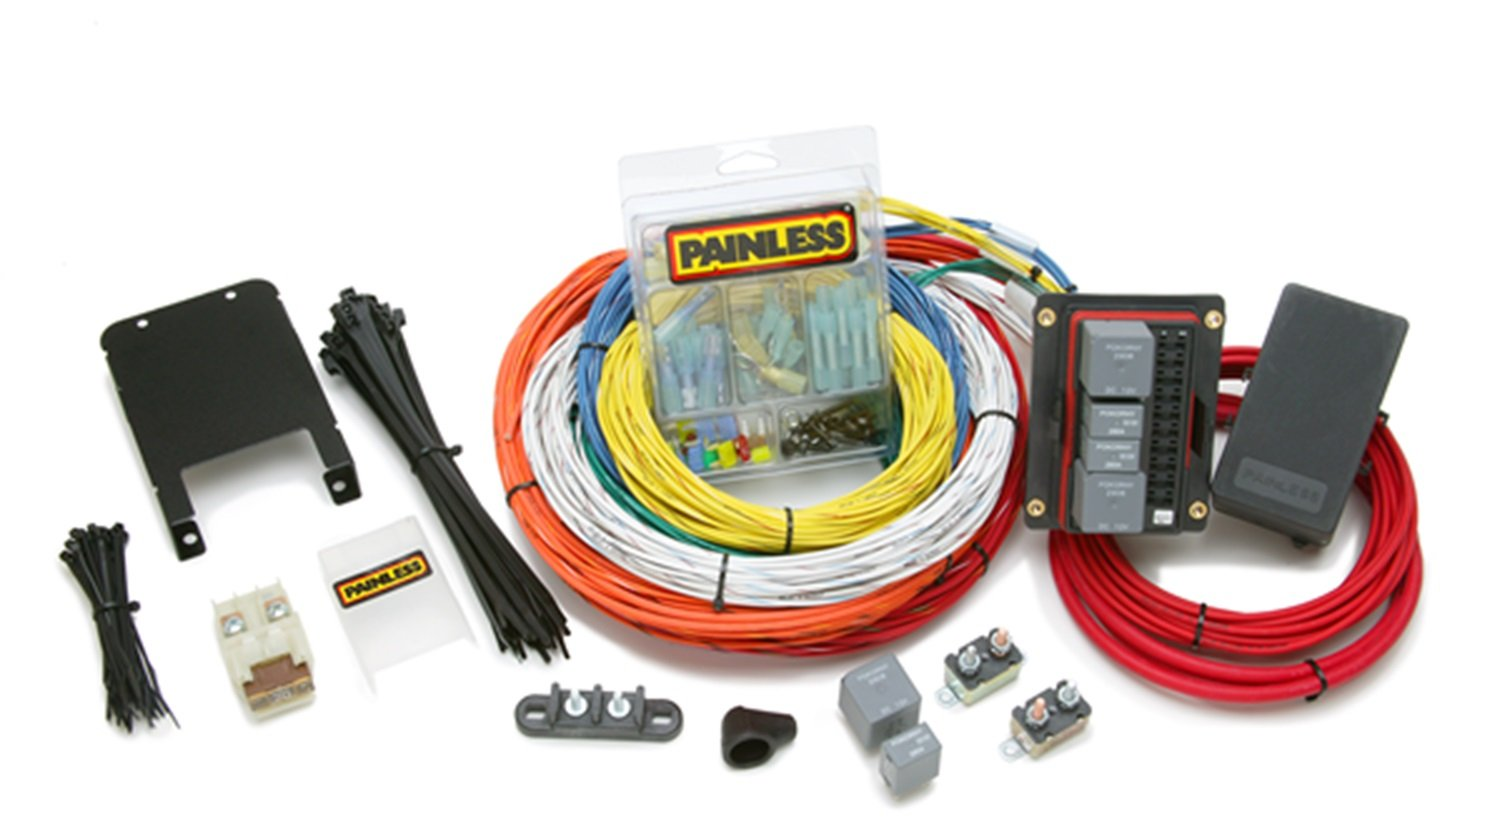 61ieZiQQu0L._SL1500_ amazon com painless wiring 10144 15 circuit customizable extreme  at panicattacktreatment.co